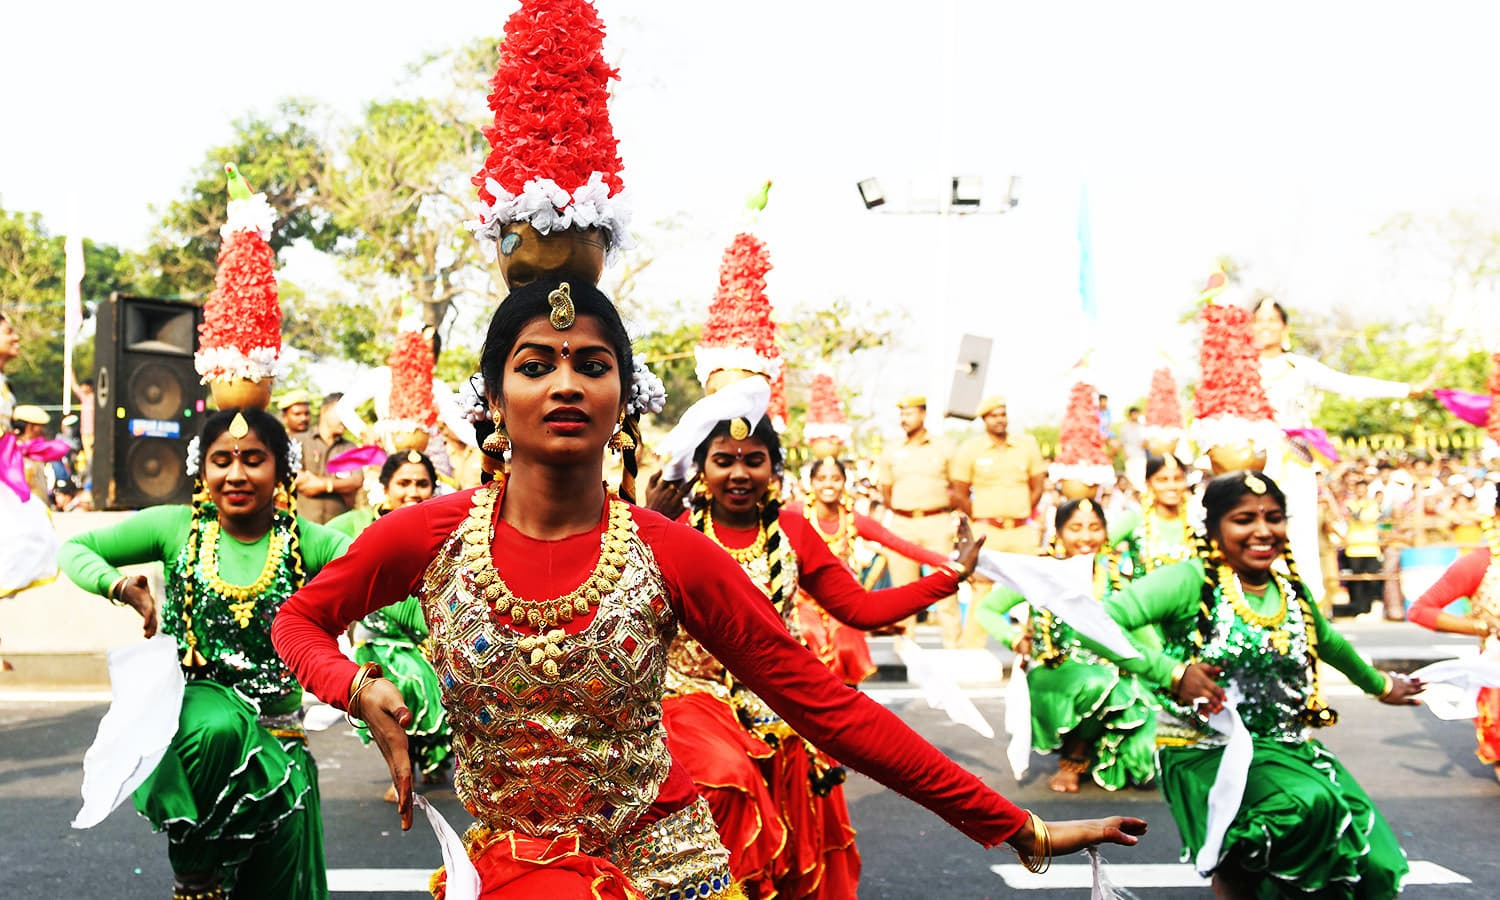 Indian school students perform a 'Karagattam' folk dance during Republic Day celebration in Chennai.—AFP